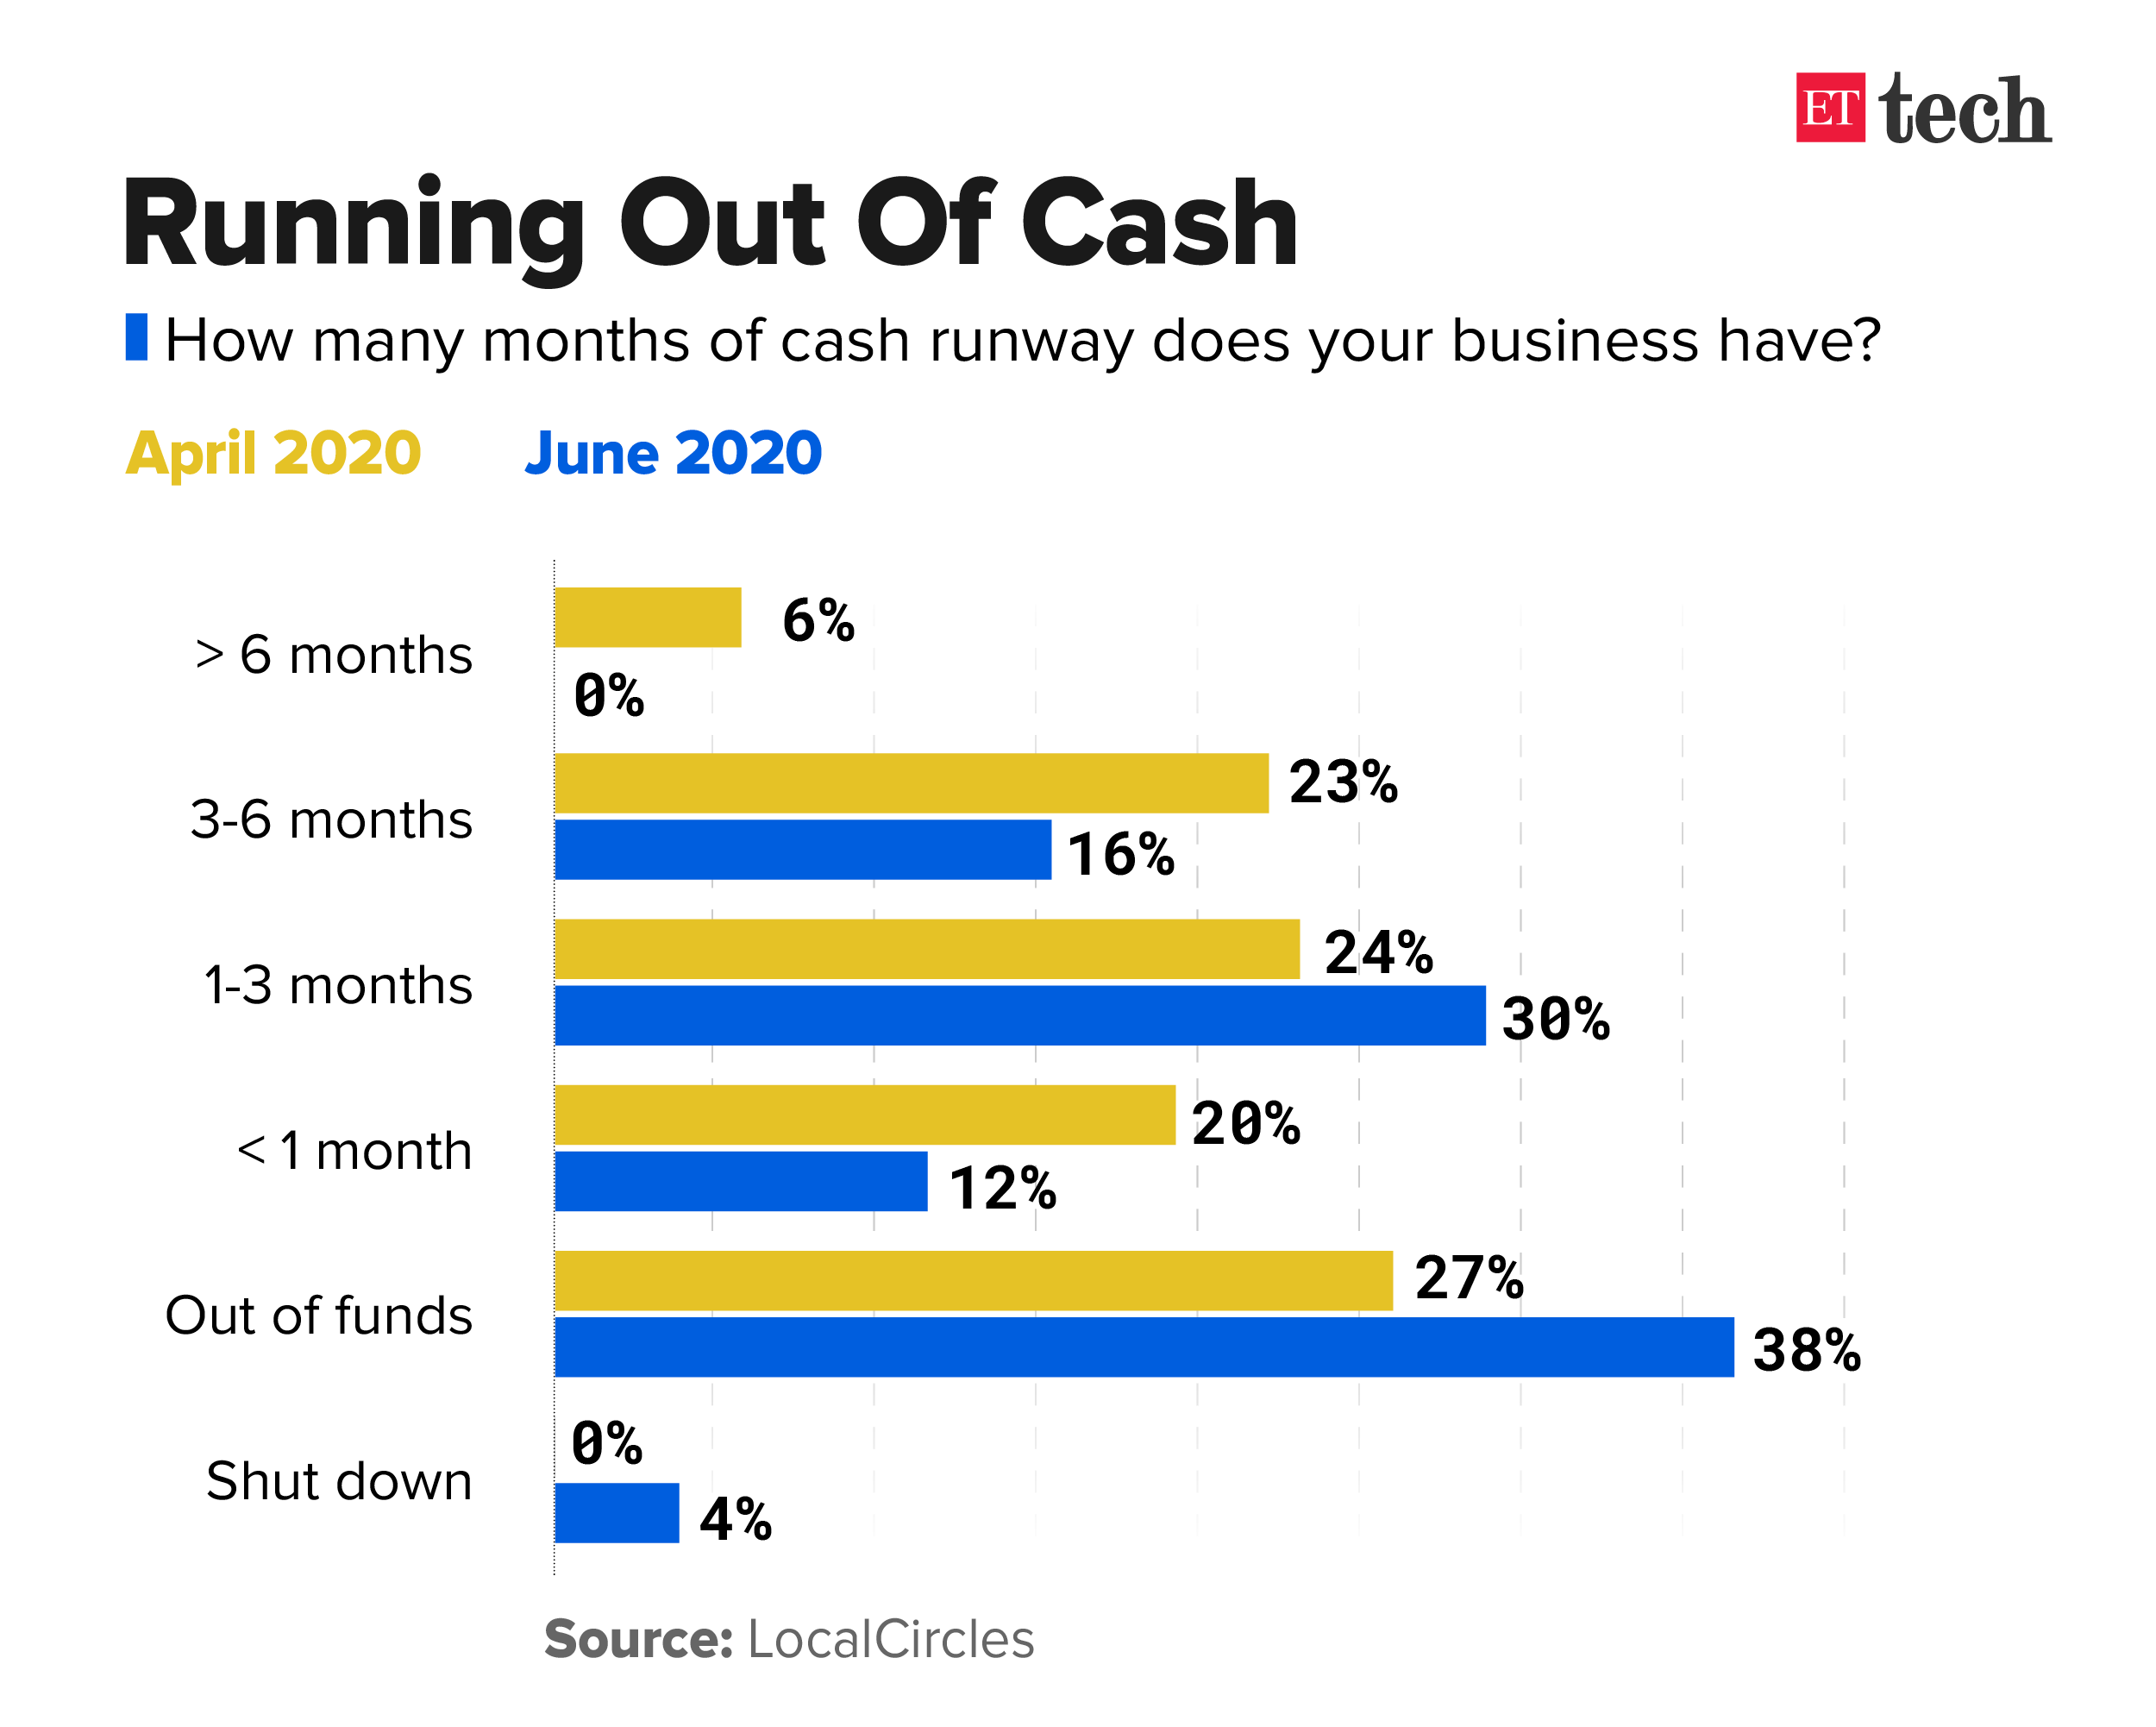 About 38% of startups run out of funds as bailout calls go unanswered: Survey